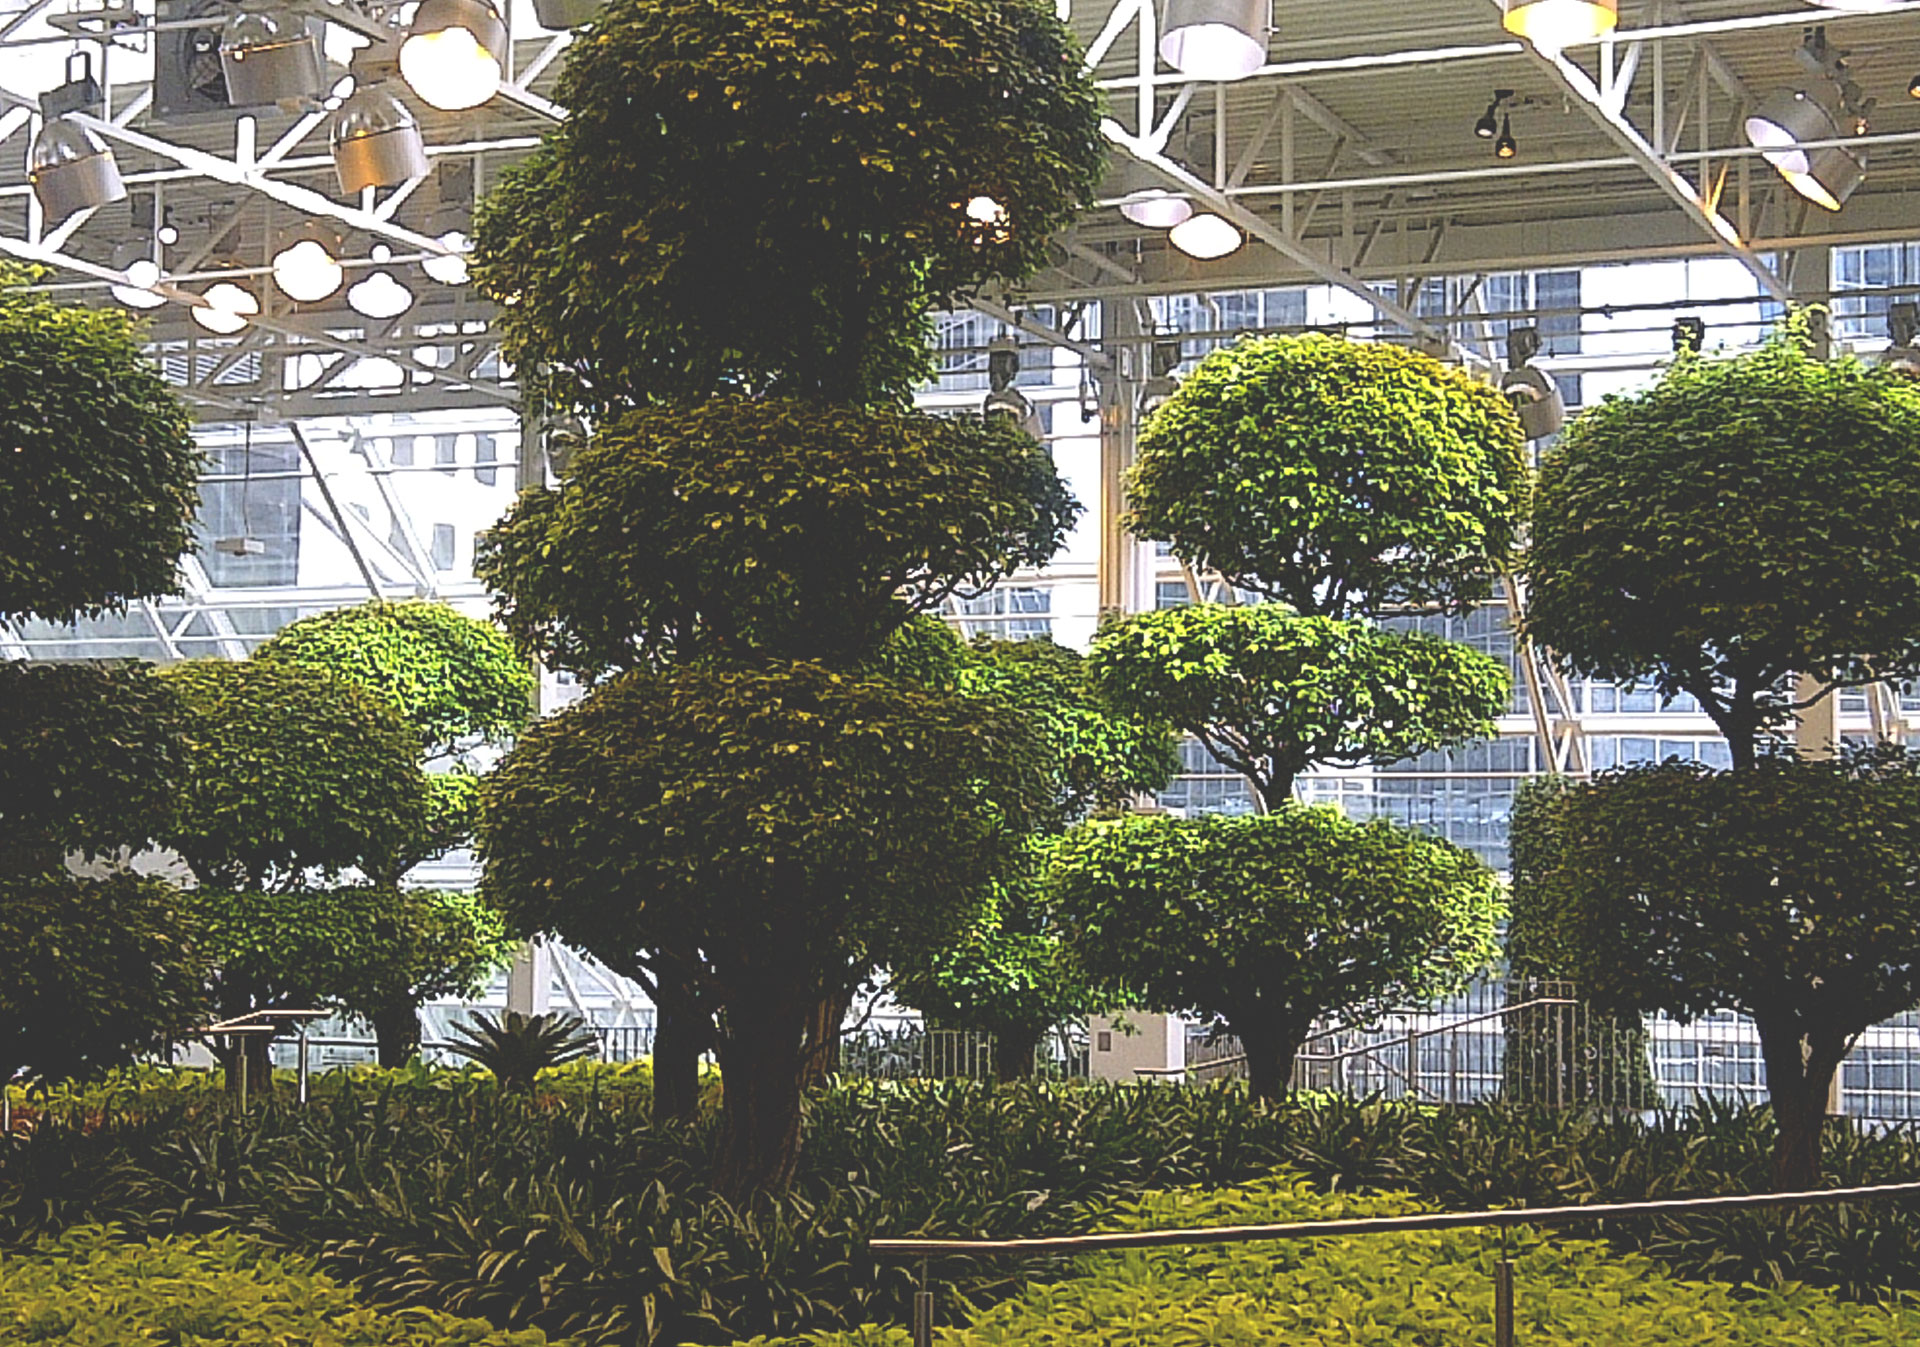 Devonian Gardens is a city park located in the top floor of the CORE Shopping Centre